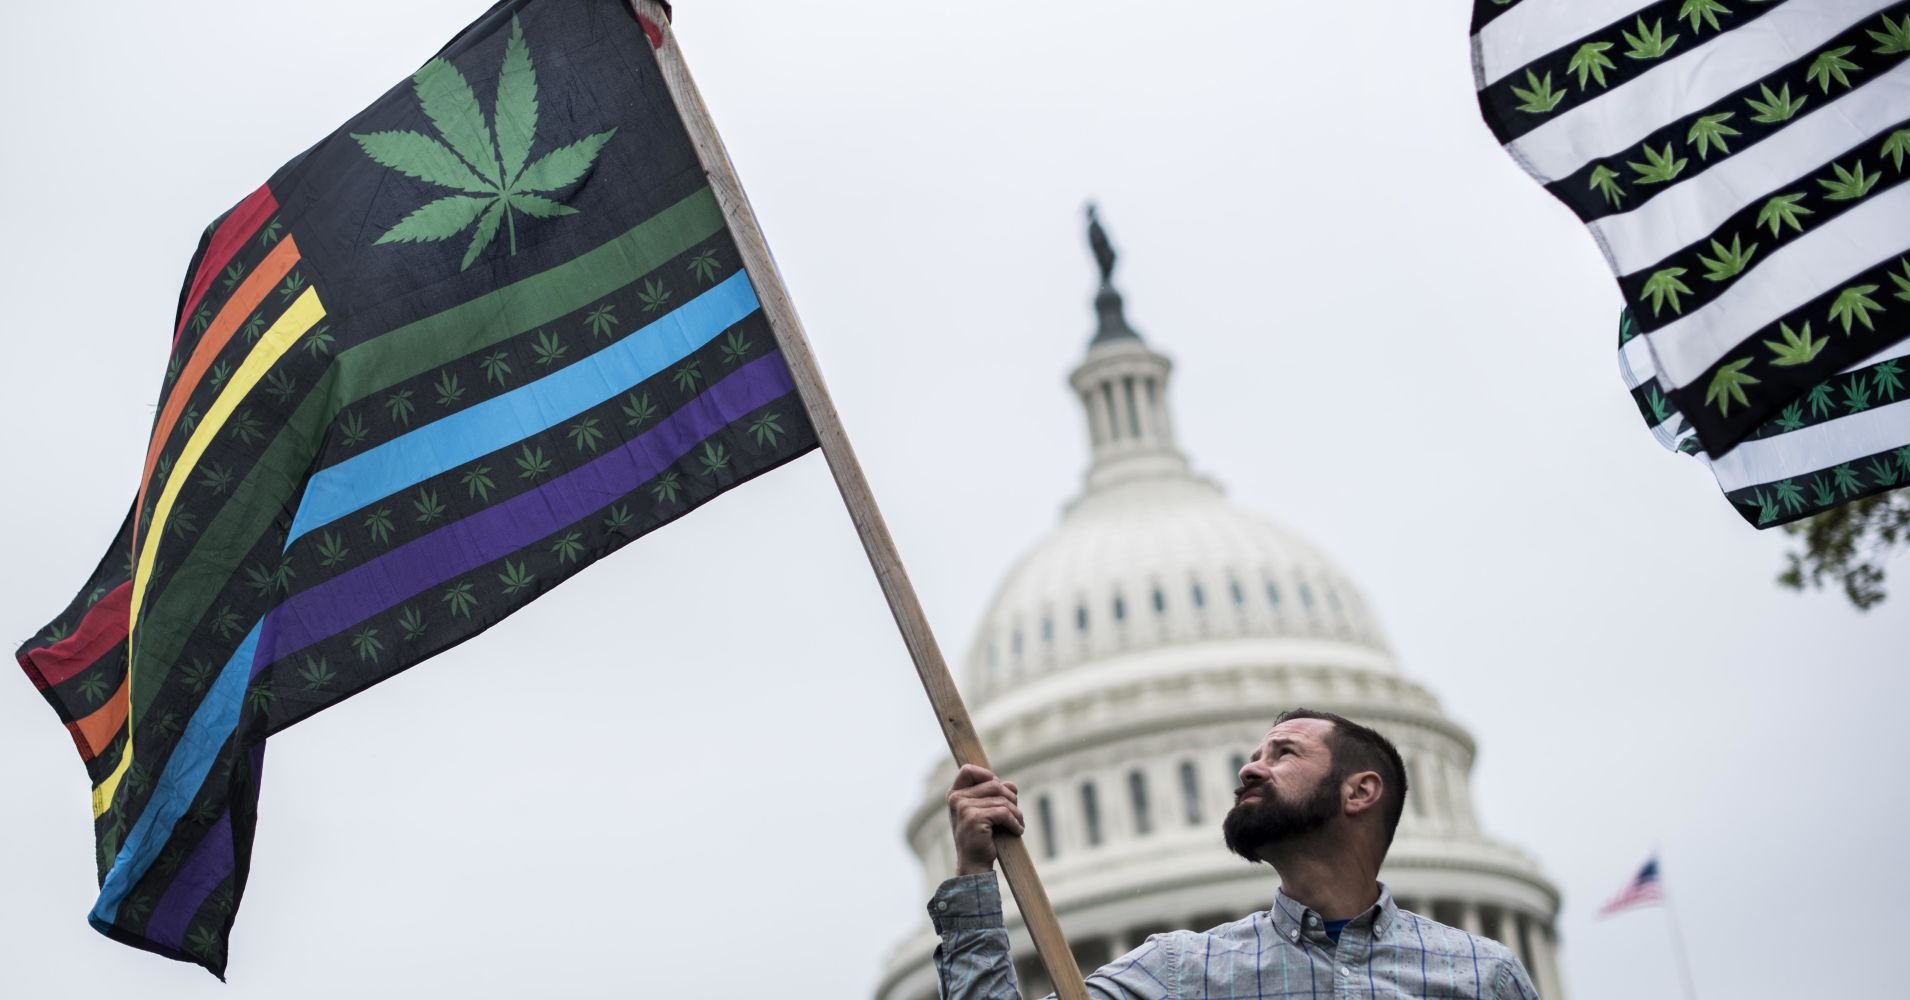 Here are 6 things you need to know about Washington DC's fuzzy market for legal pot